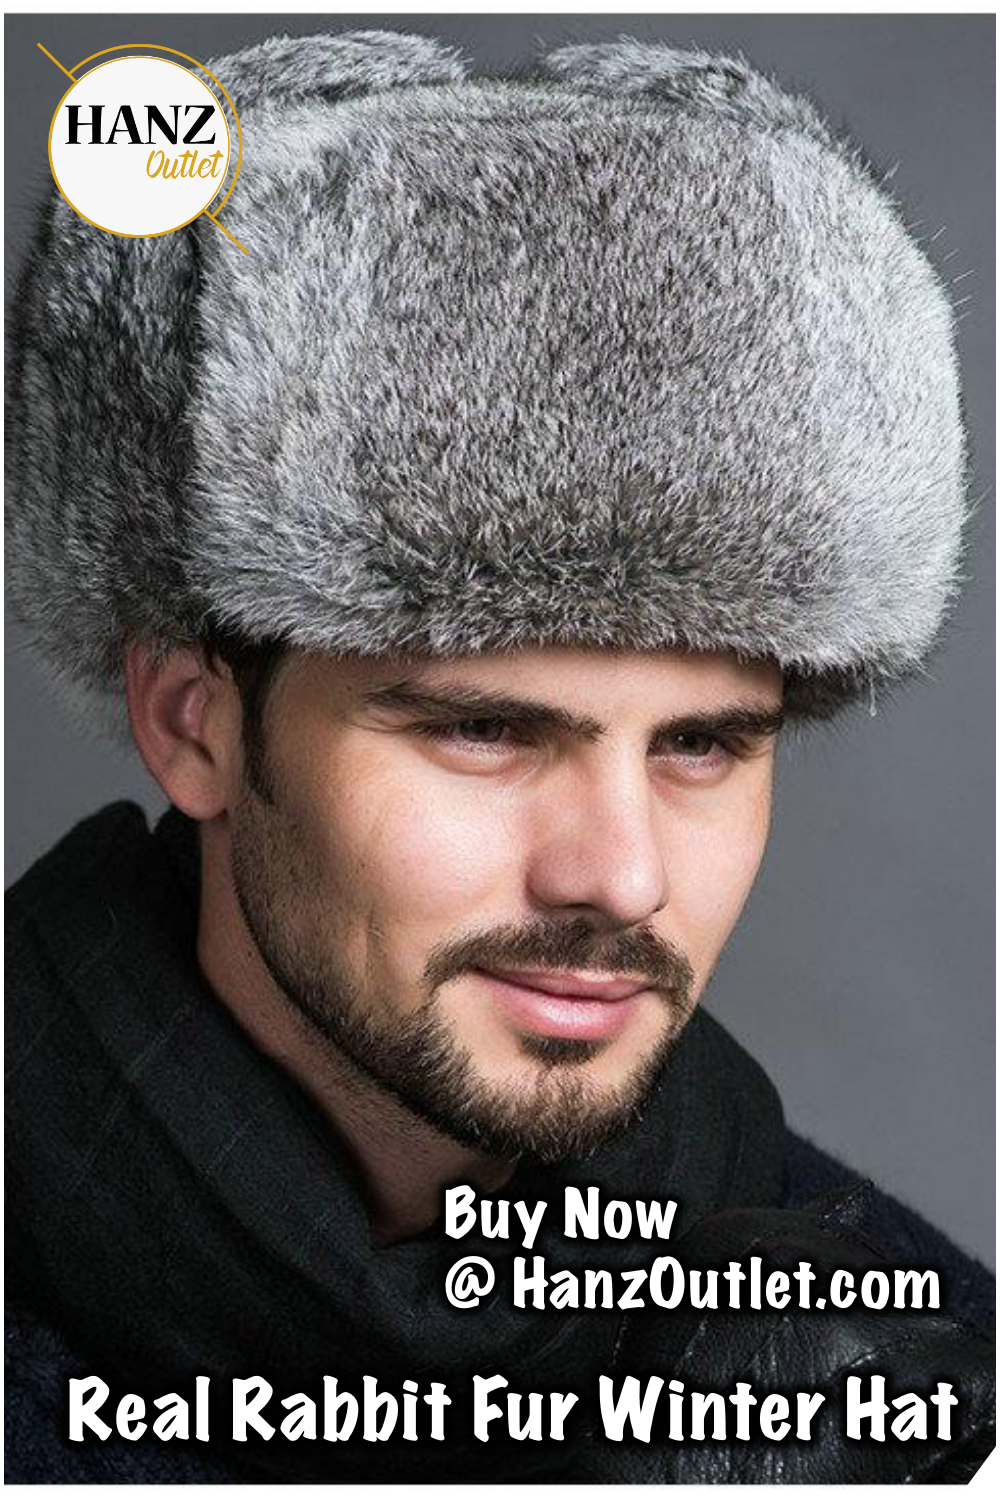 a0b3d41c9bf High Quality Mens 100% Real Rabbit Fur Winter Hats Lei Feng hat With Ear  Flaps Warm Snow Caps Russian Hat Bomber Cap  MensHat  RealRabbitHats   EarFlaps ...